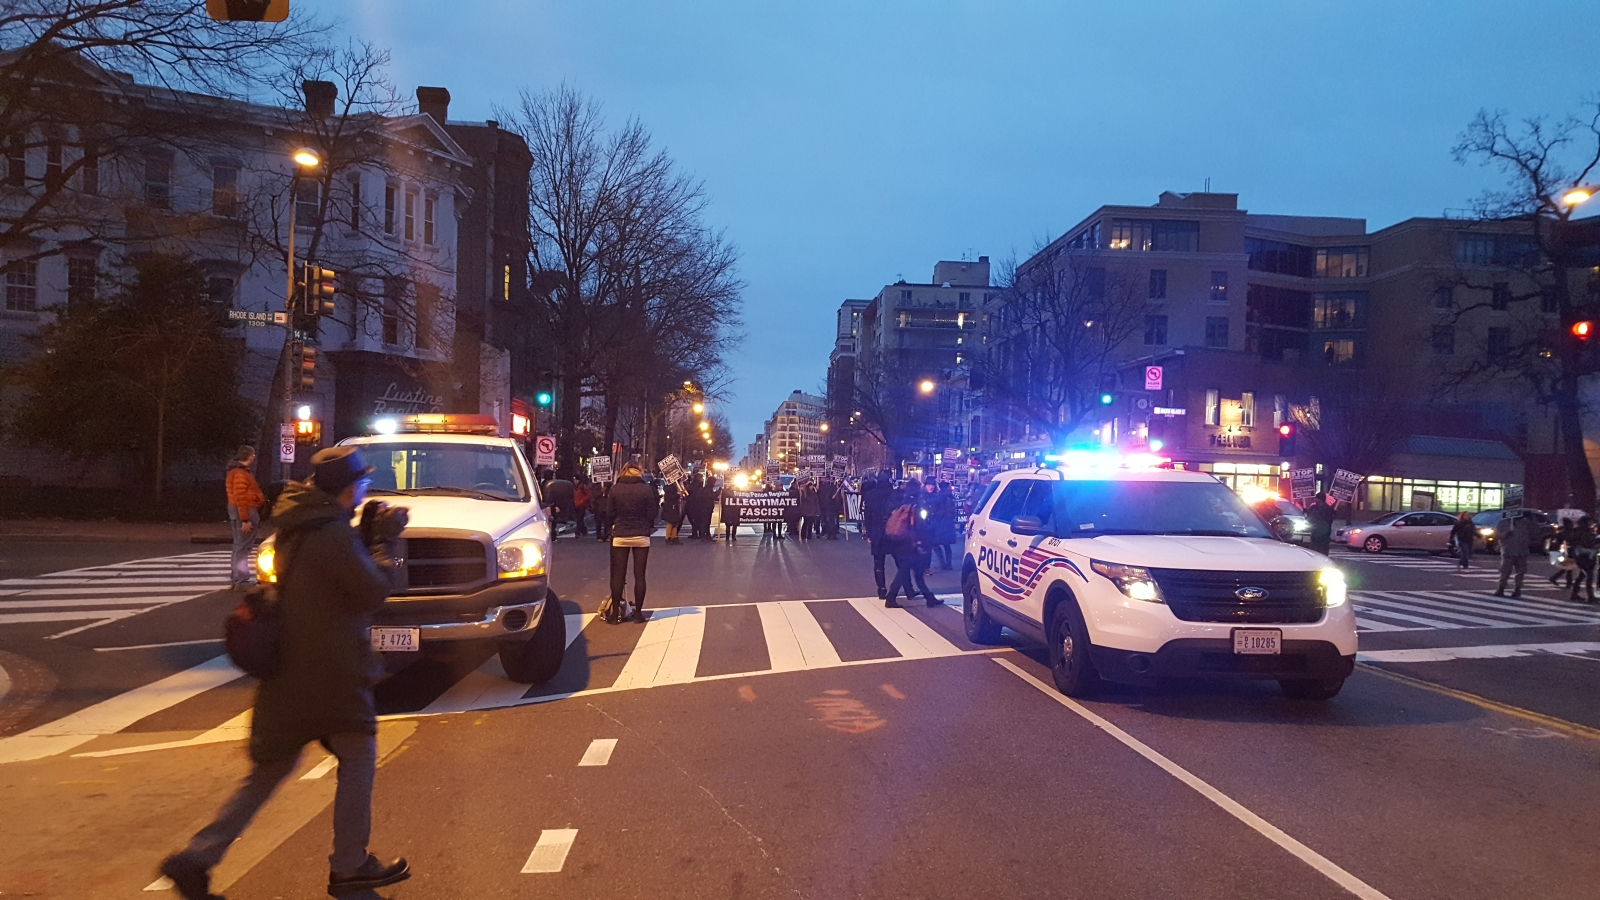 Police cars and protesters in DC